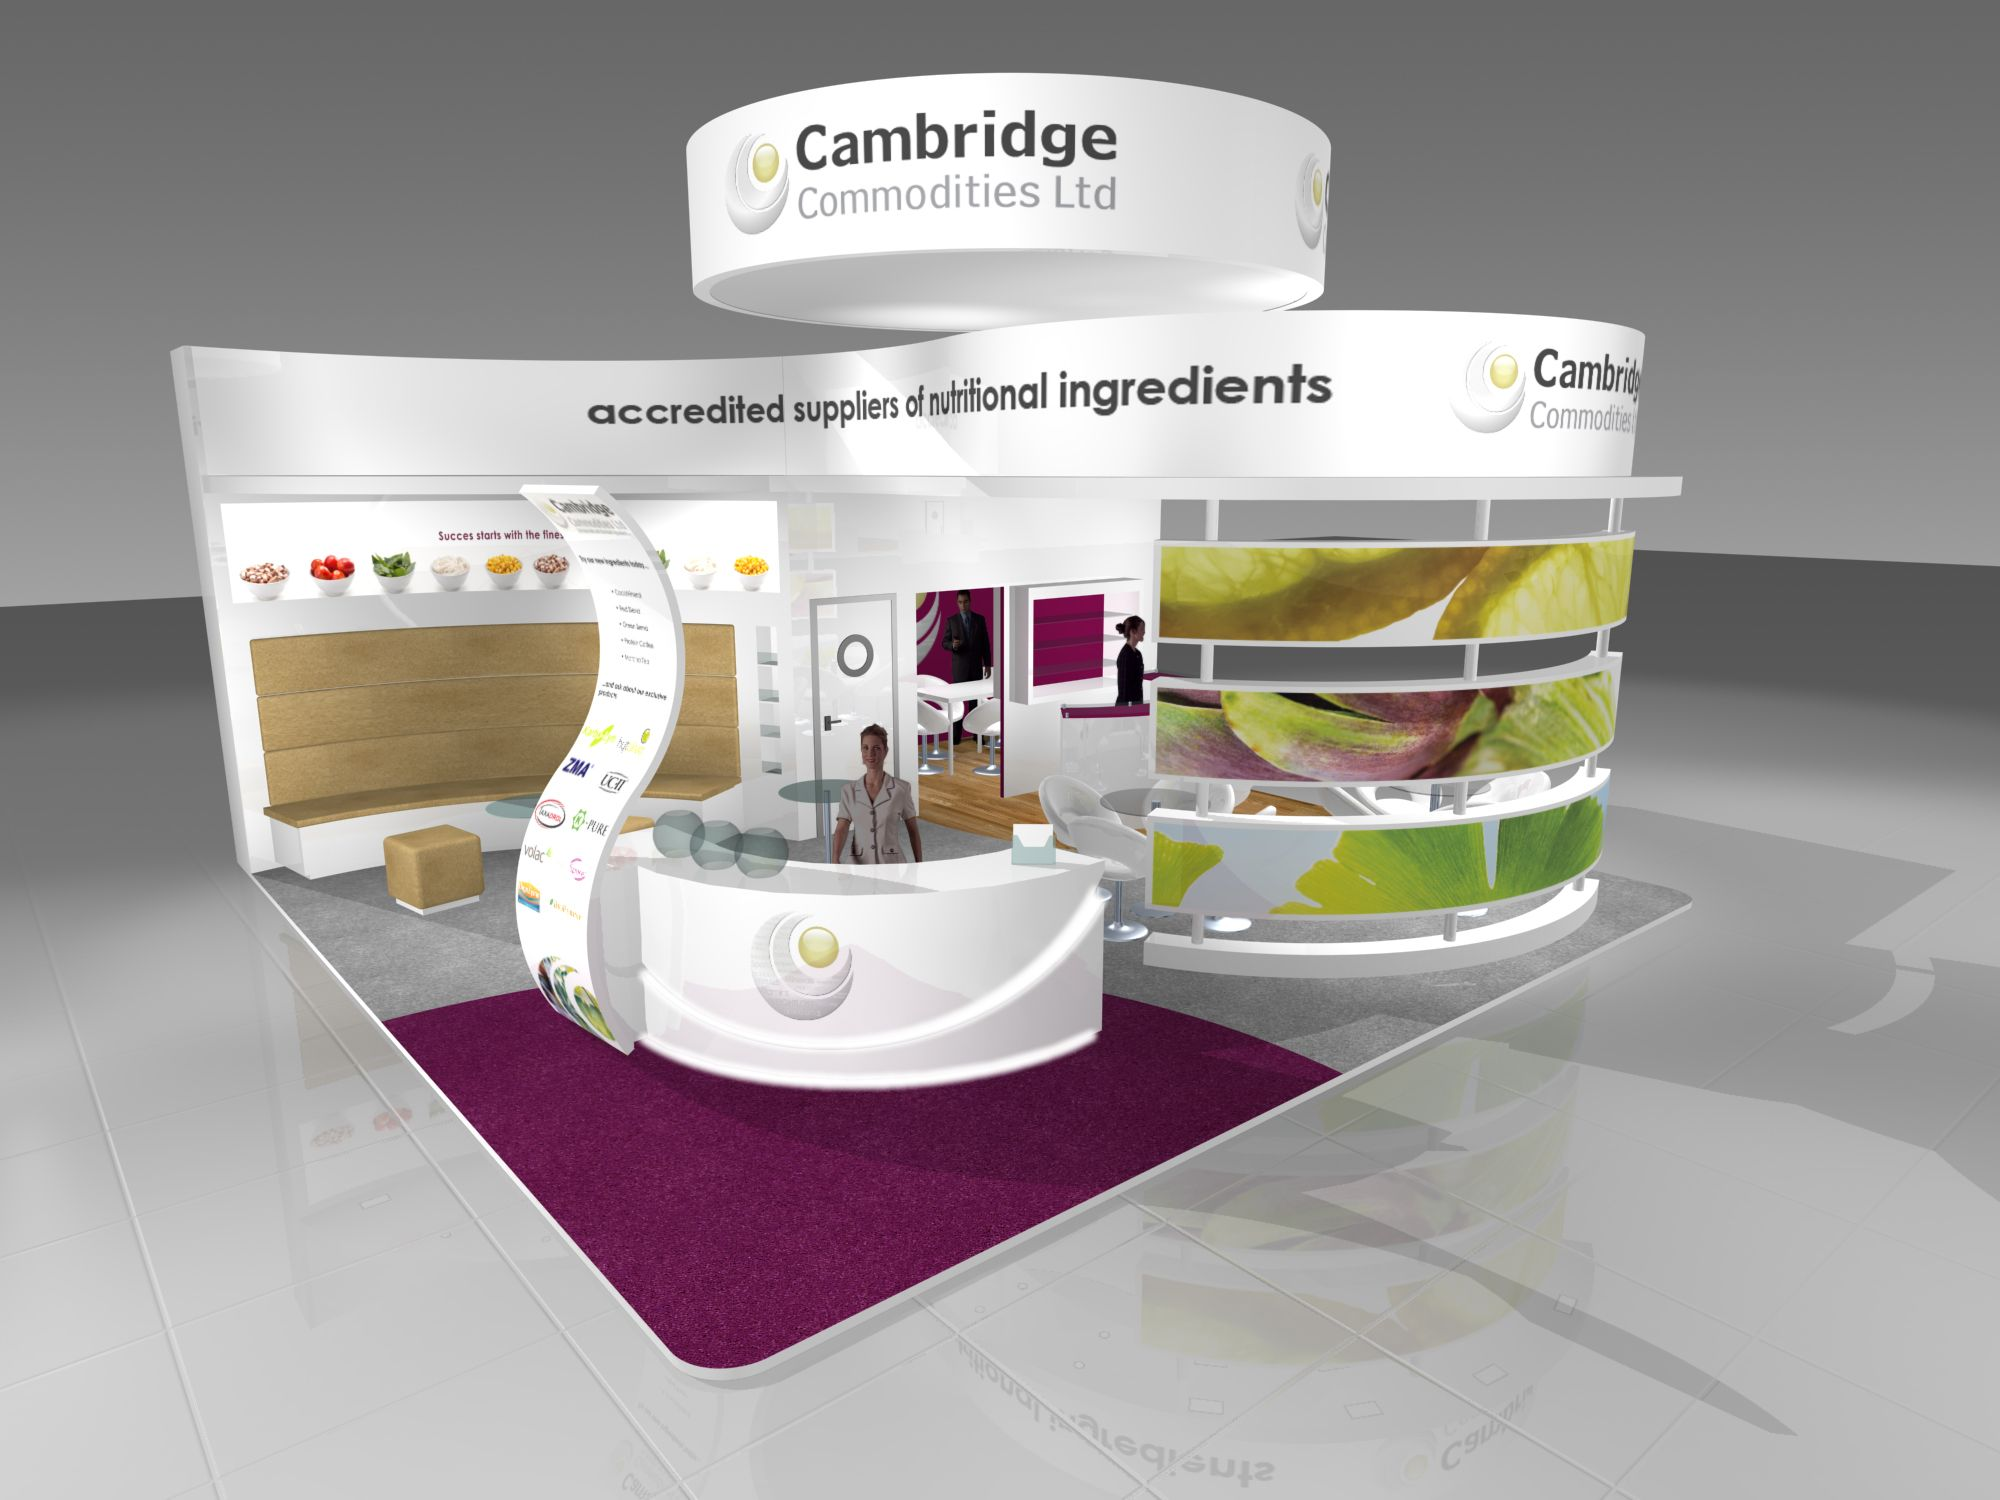 Exhibition Stand Hire Cambridge : Cambridge commodities exhibition stand design render for